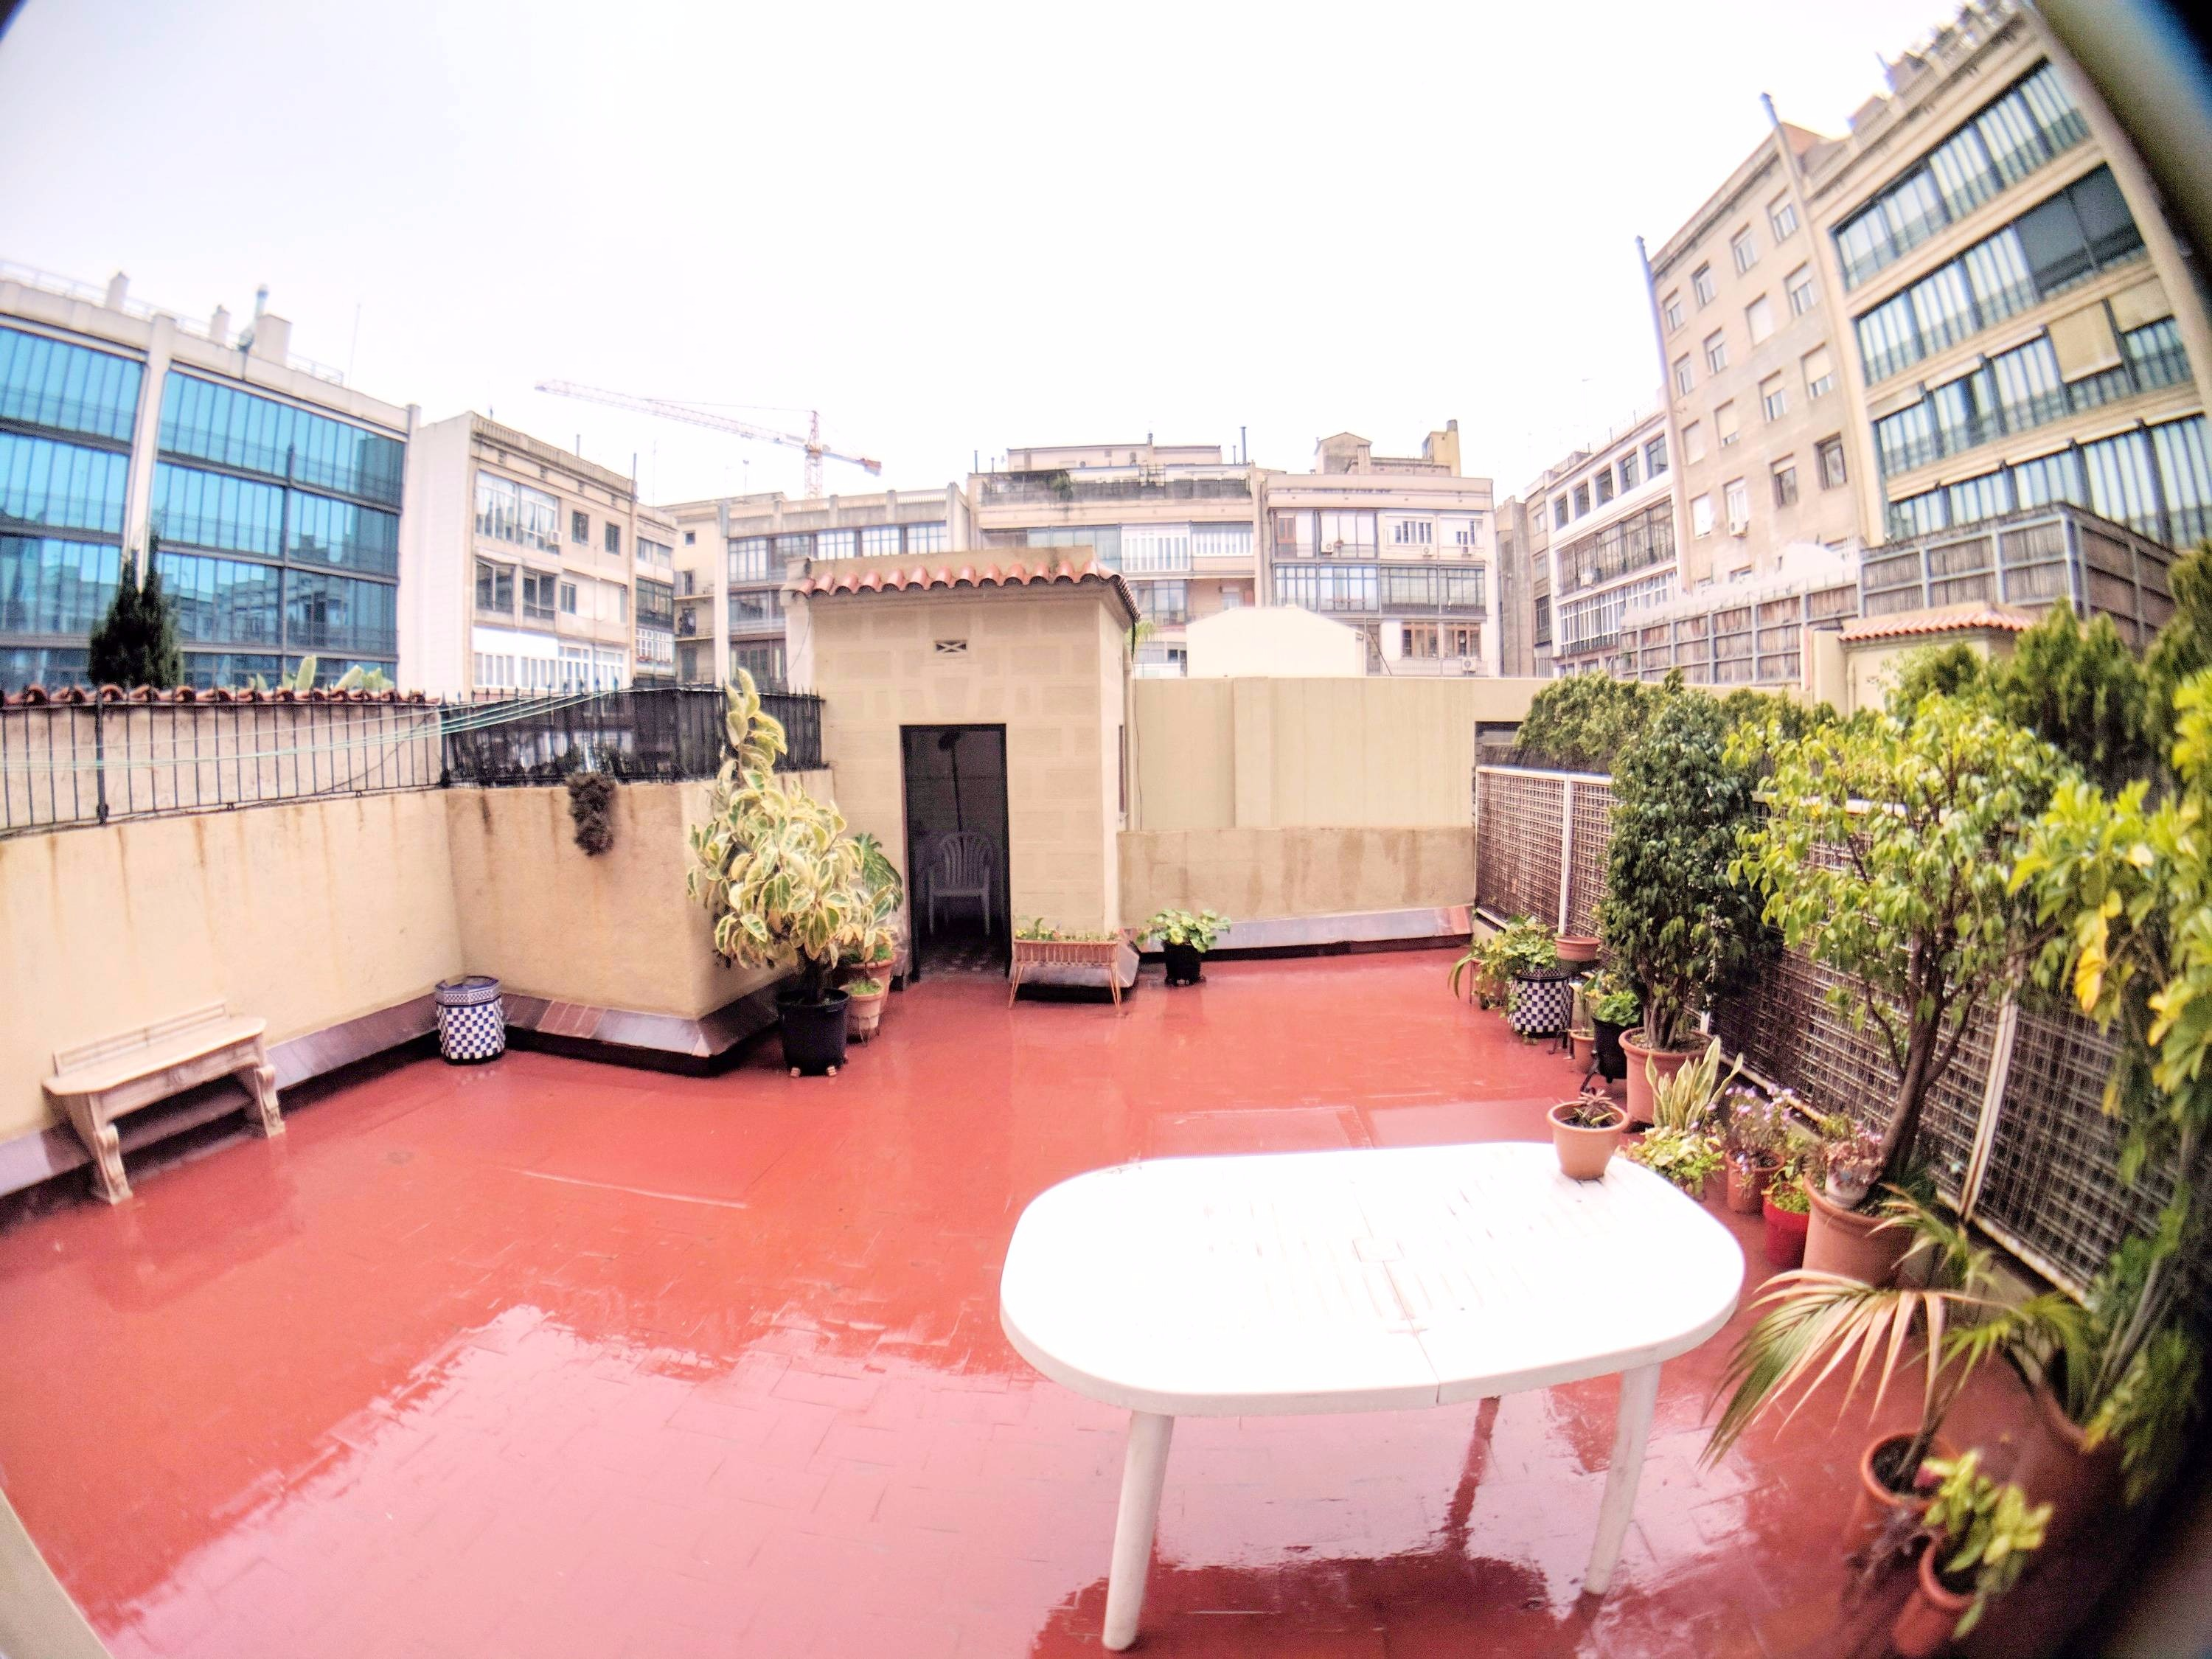 Flat for Sale with Terrace in the Center of Barcelona.